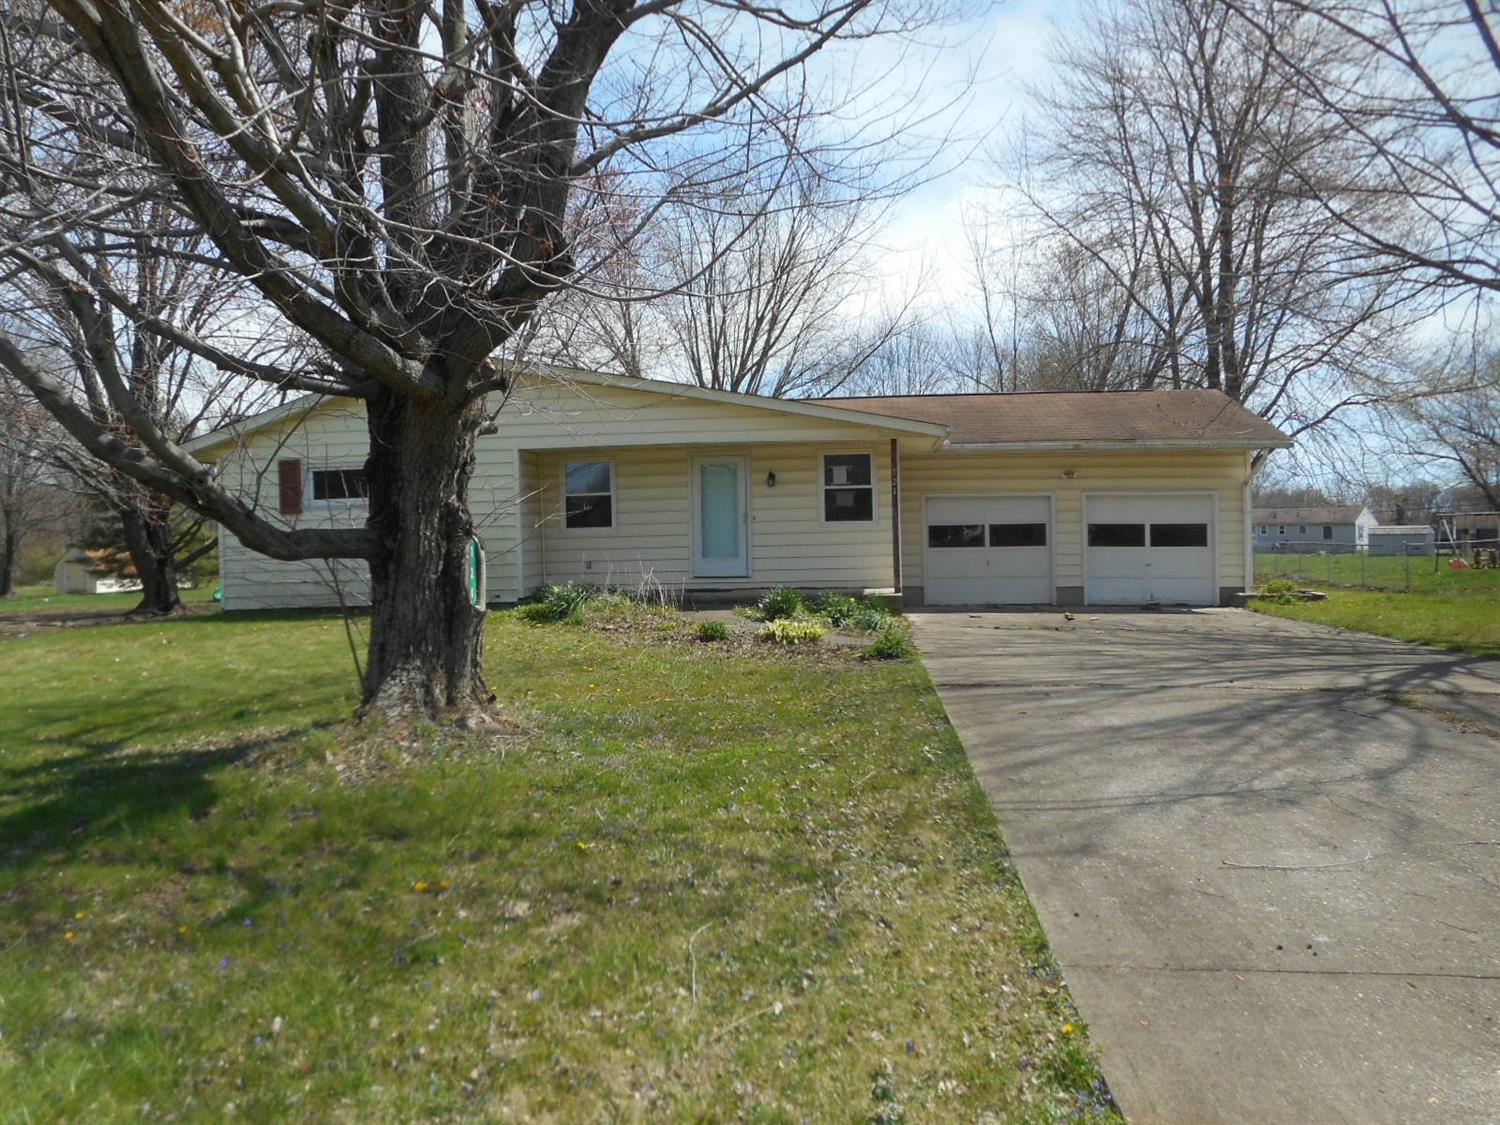 124 N Cross St Wayne Twp. (Clermont Co.), OH